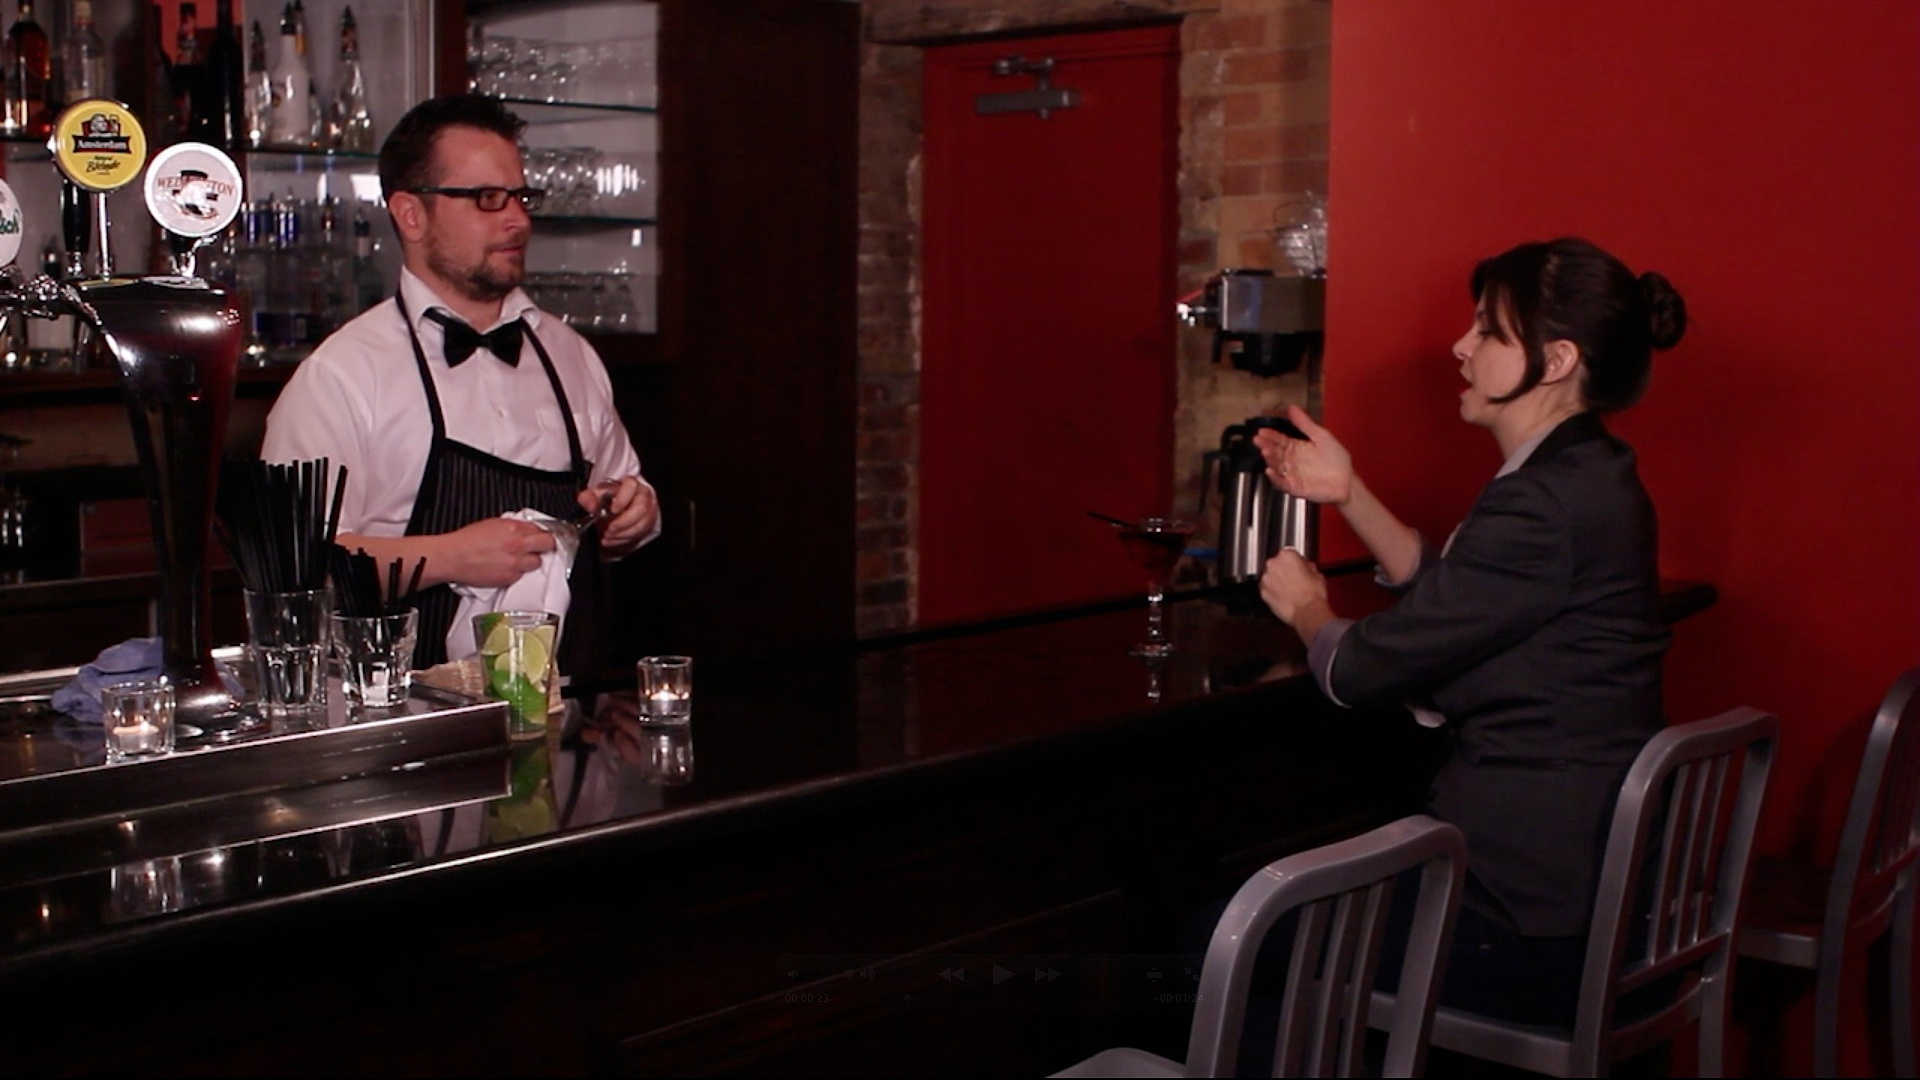 Teaser shoot - THE BAR